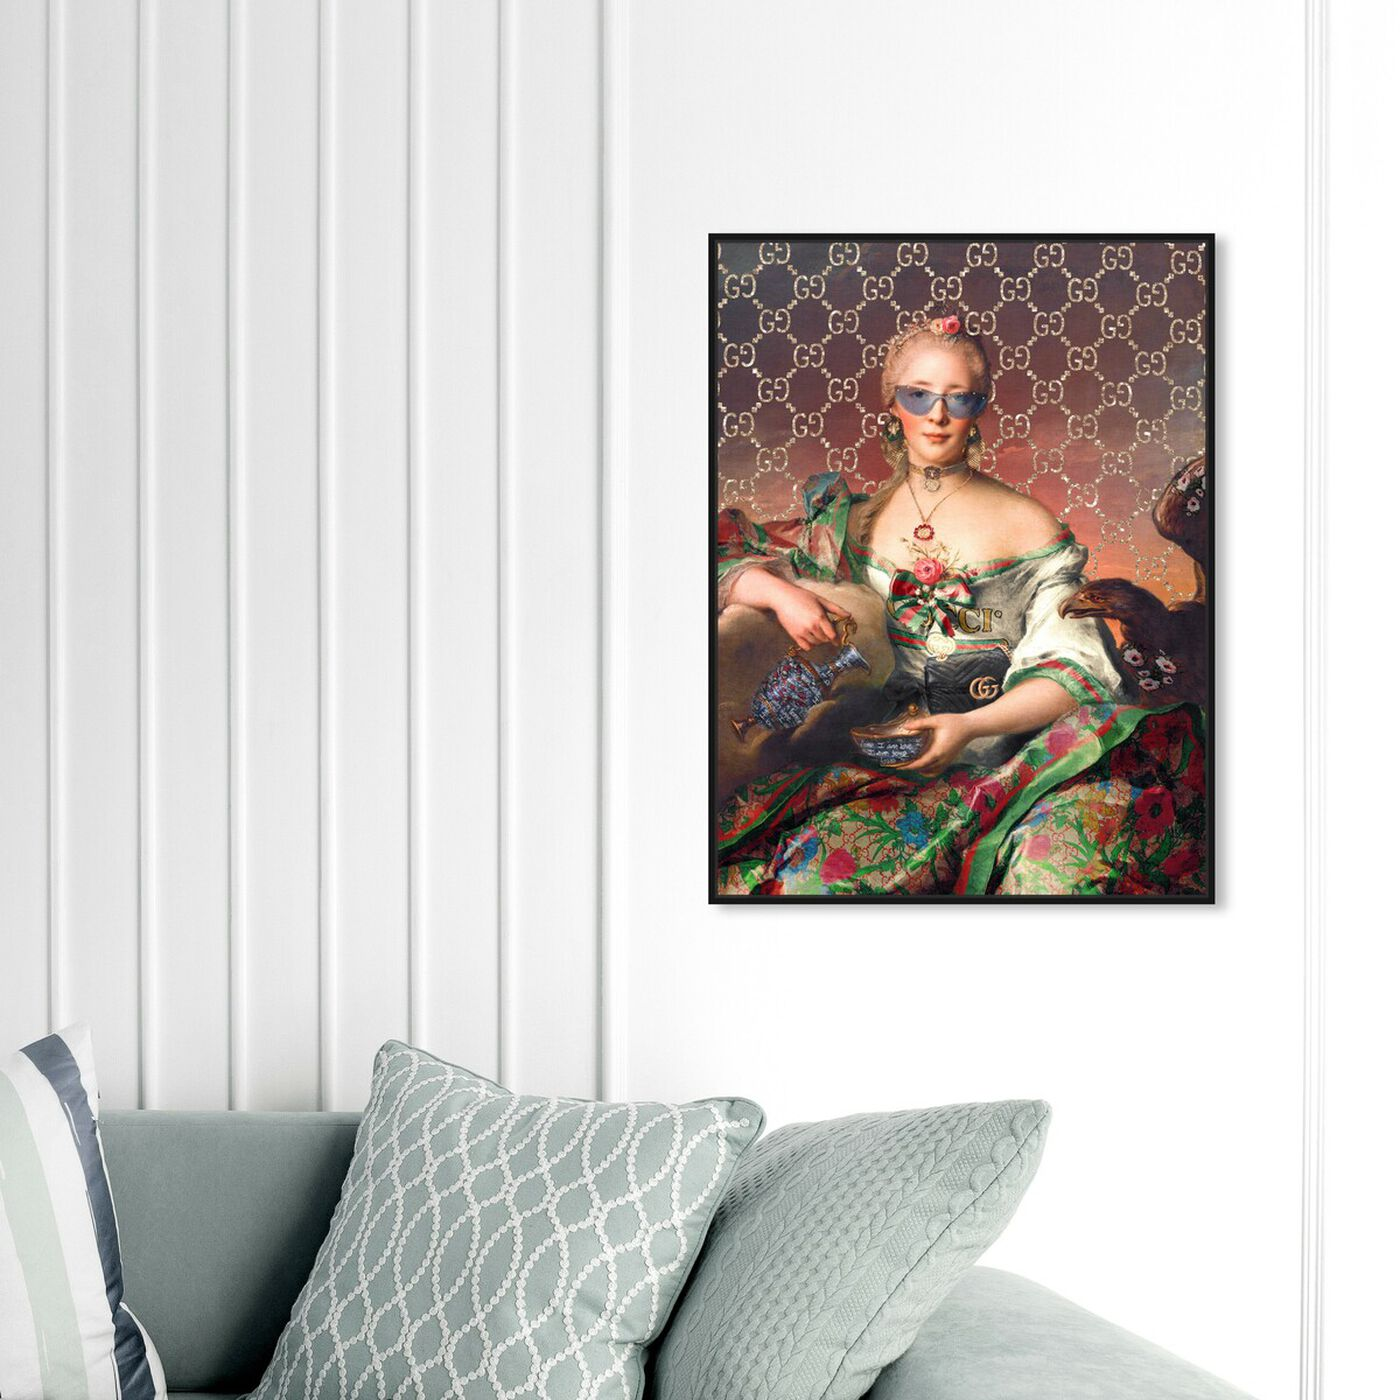 Hanging view of Urban Madame featuring fashion and glam and handbags art.